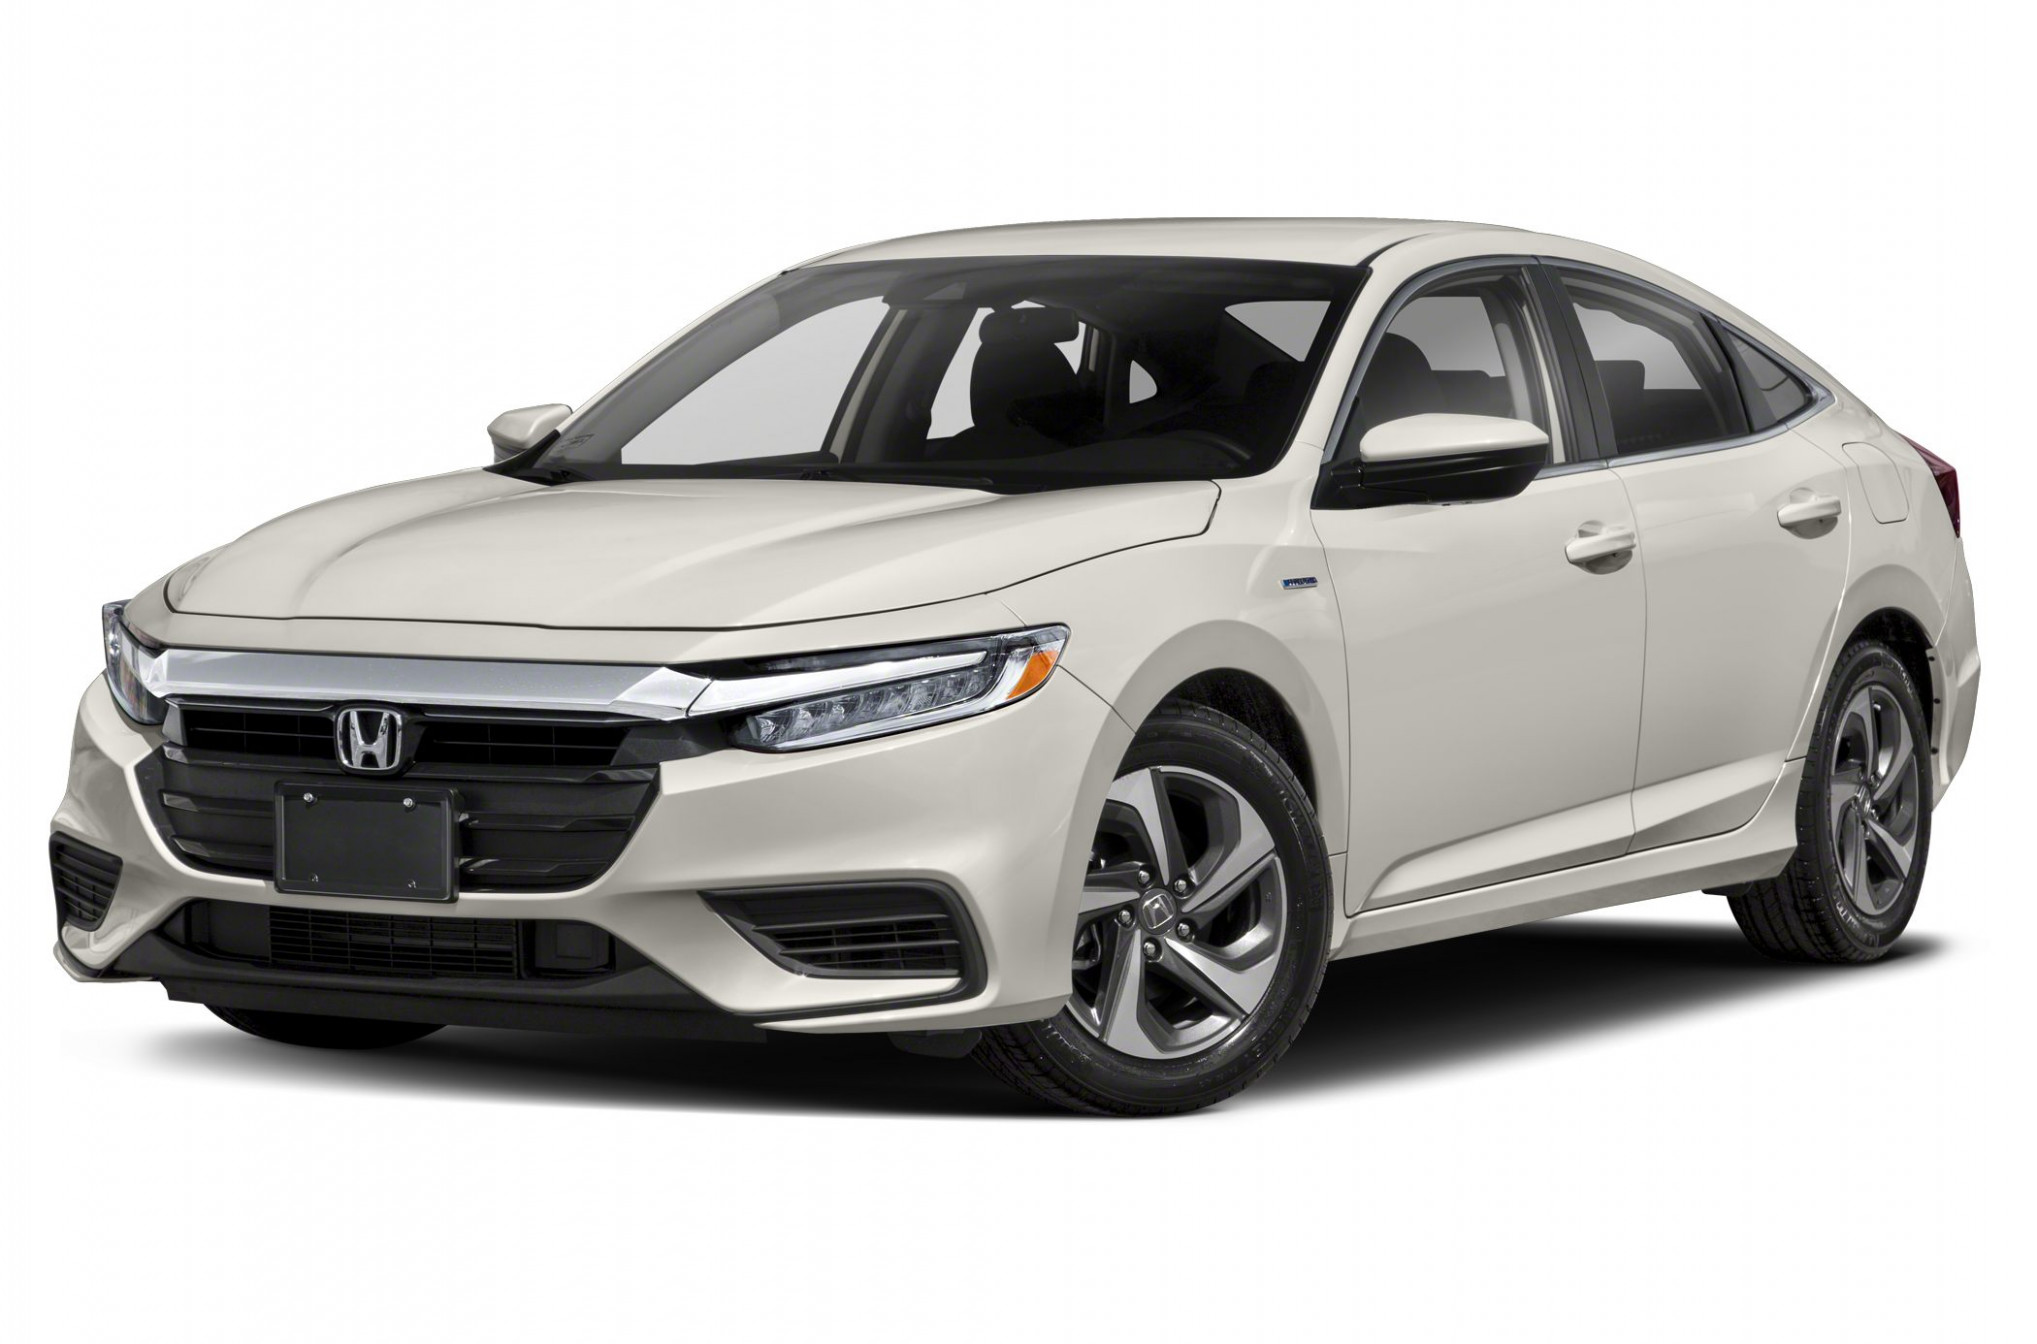 6 Honda Insight EX 6dr Sedan Pictures - honda insight 2020 review